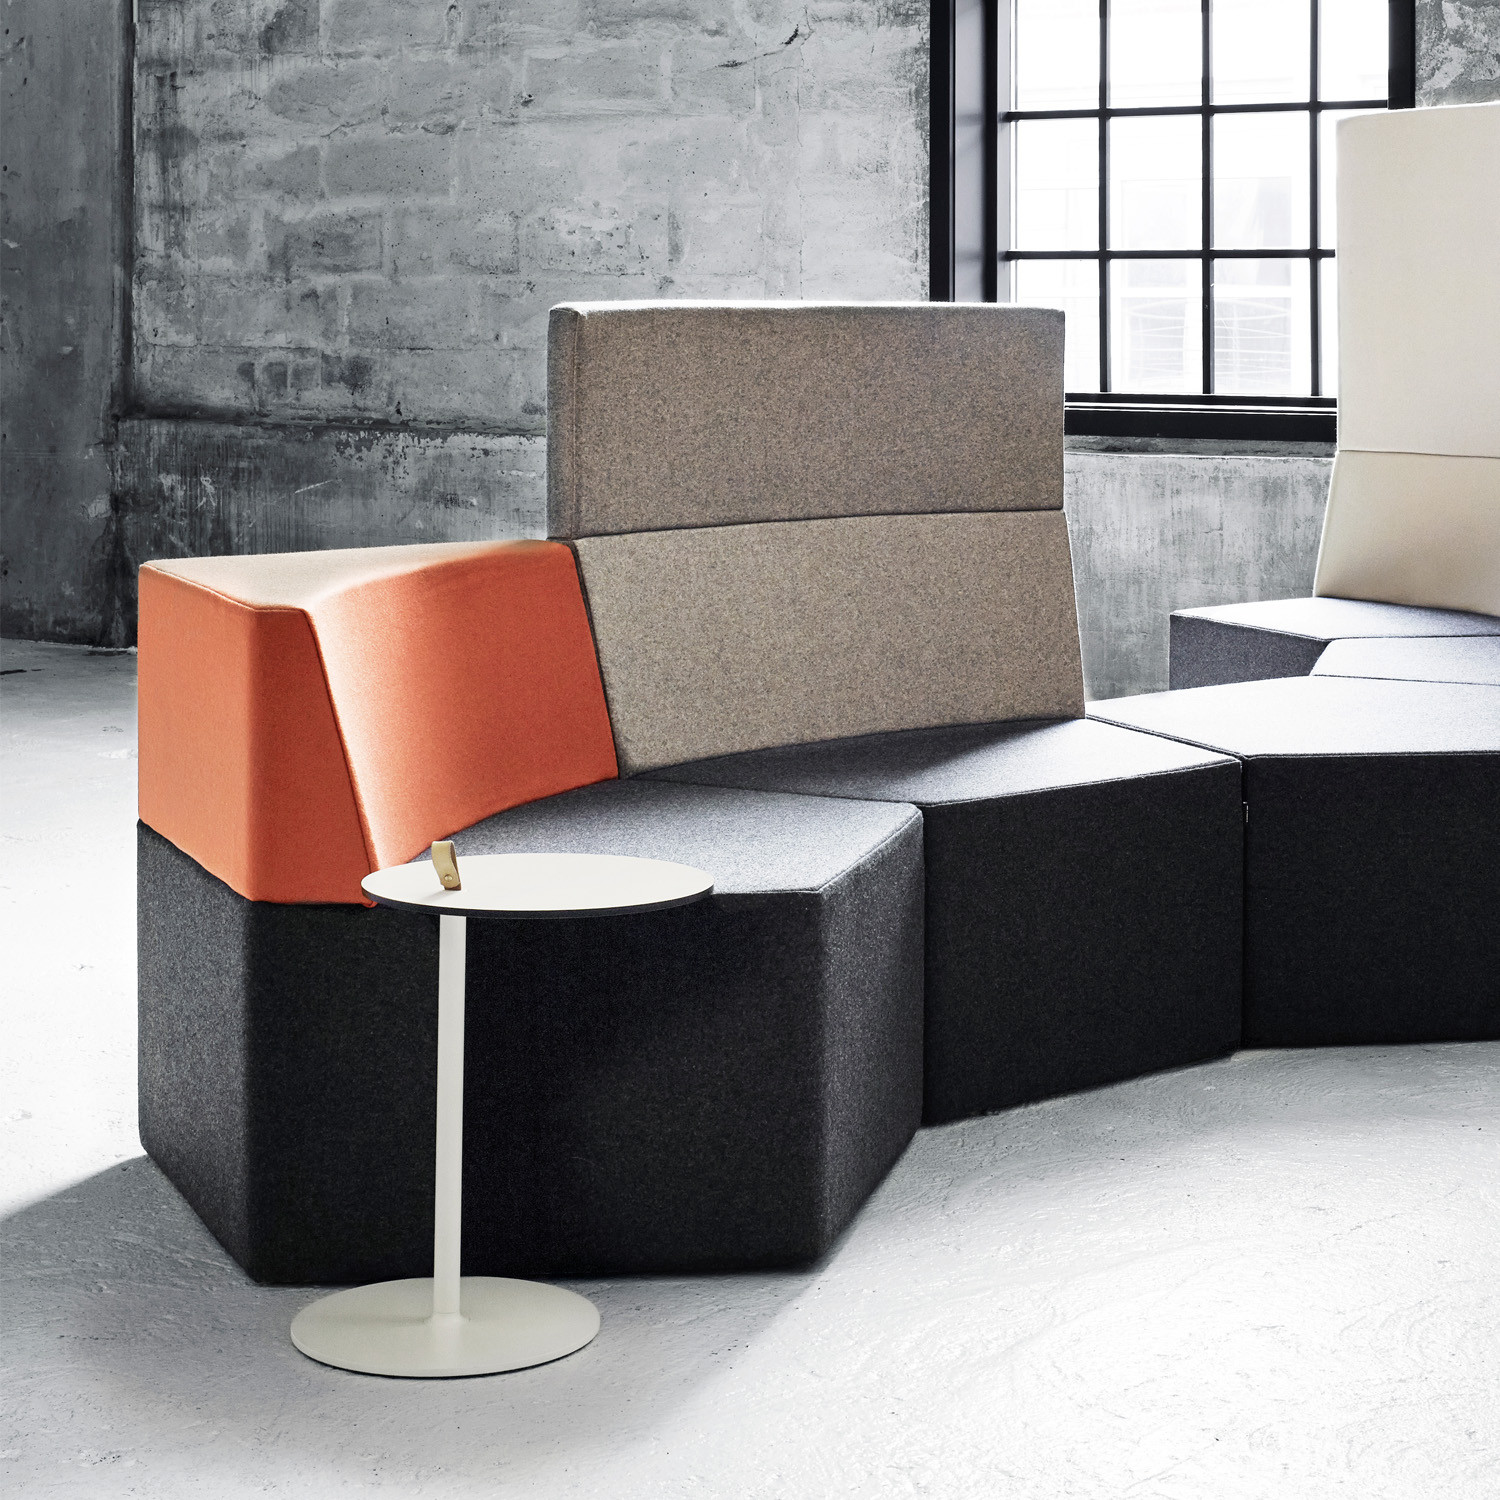 Strap Lounge Table with Manhattan Modular Seating